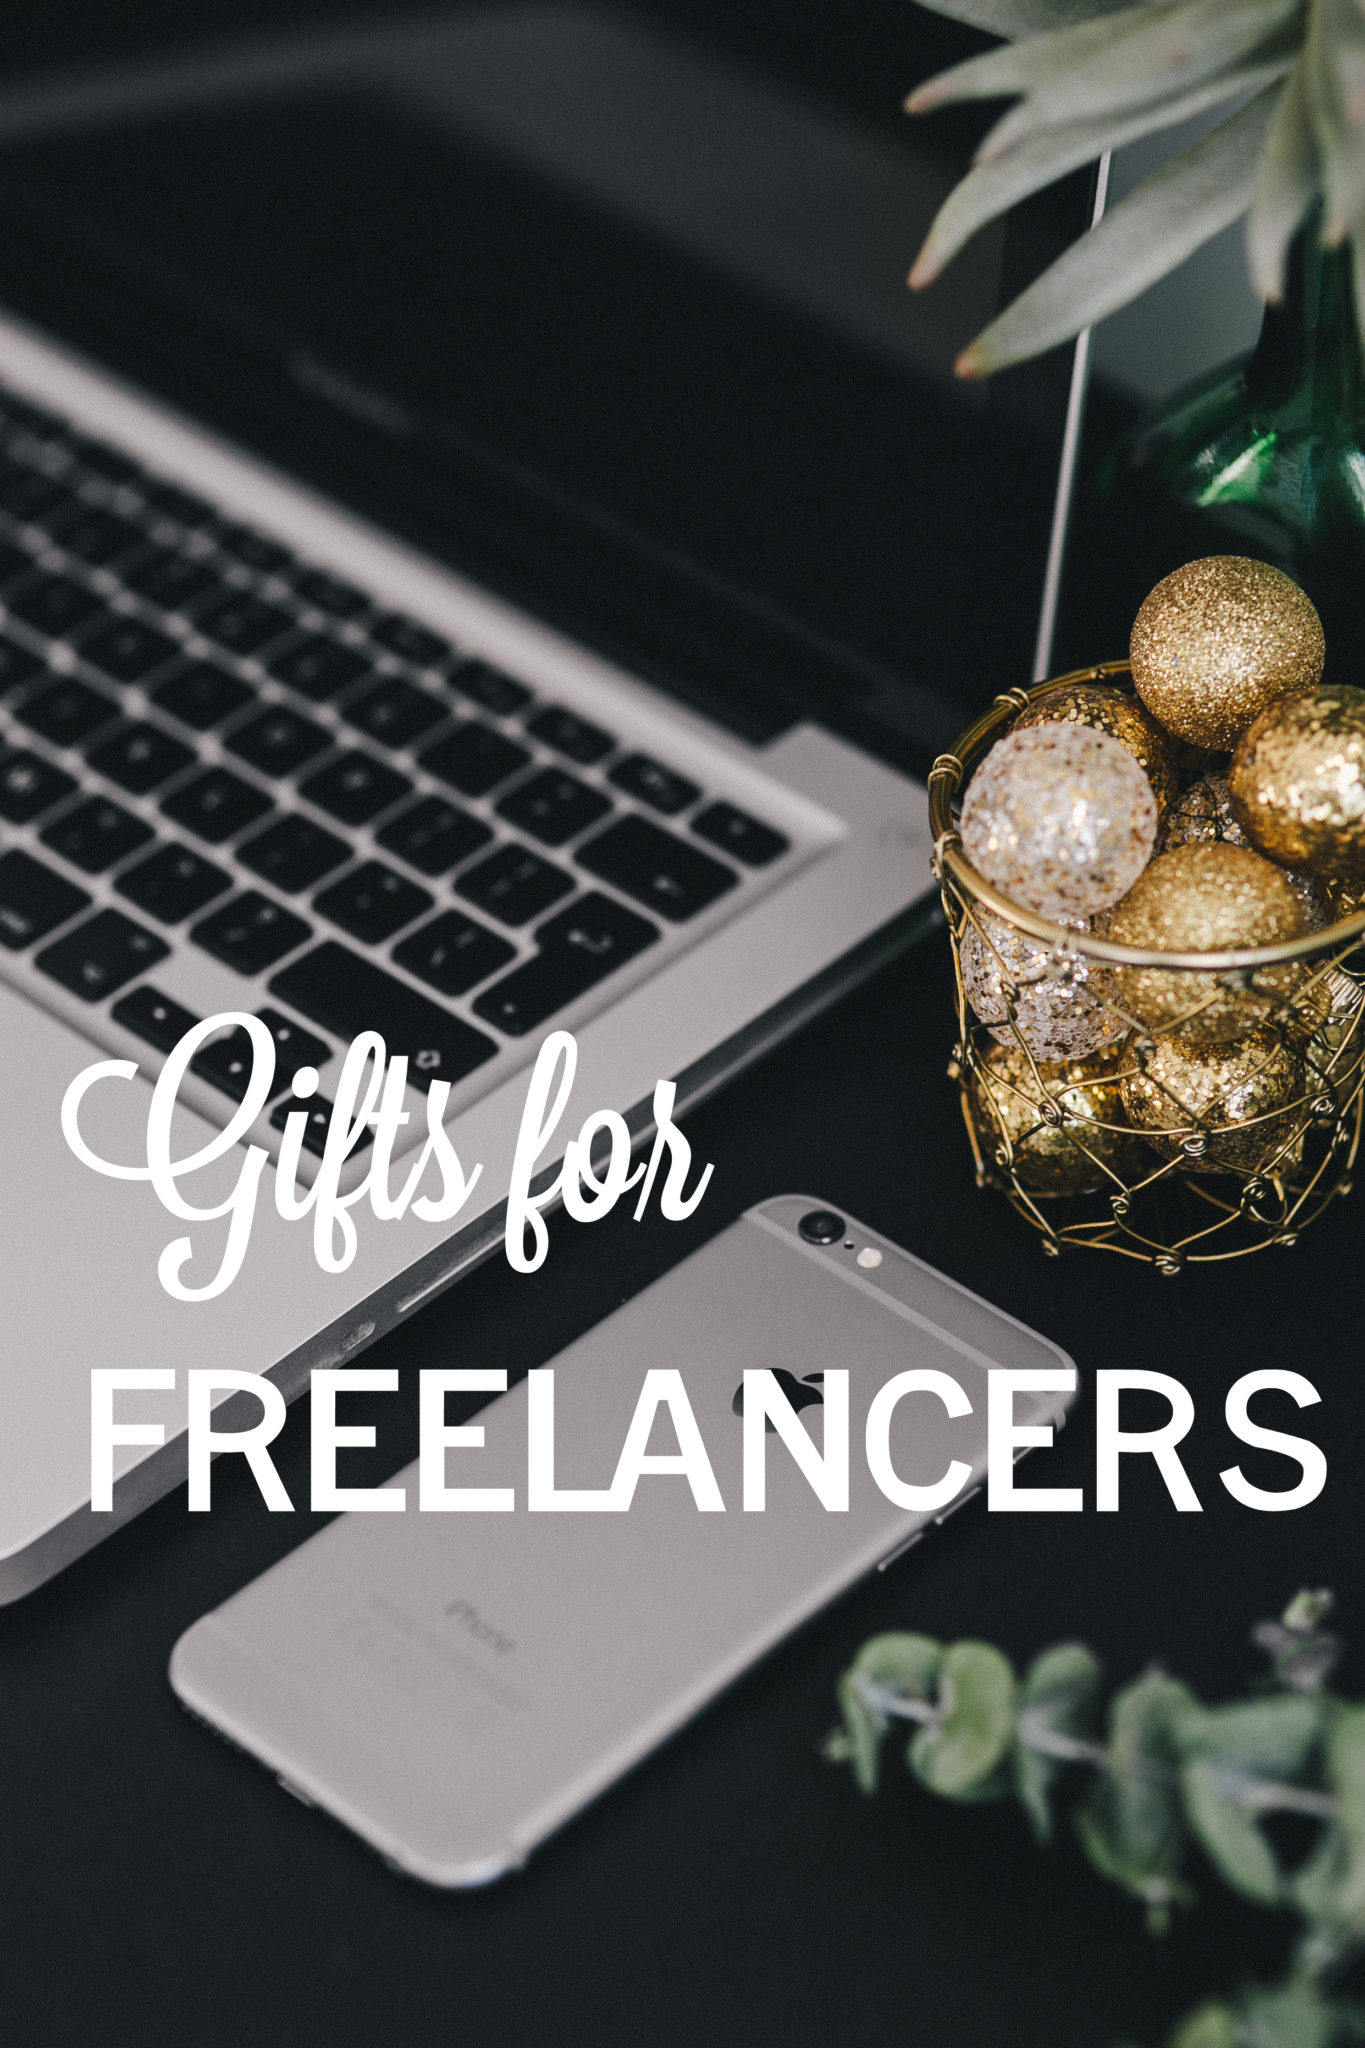 if you know a freelancer, check ou these gift ideas for Christmas!